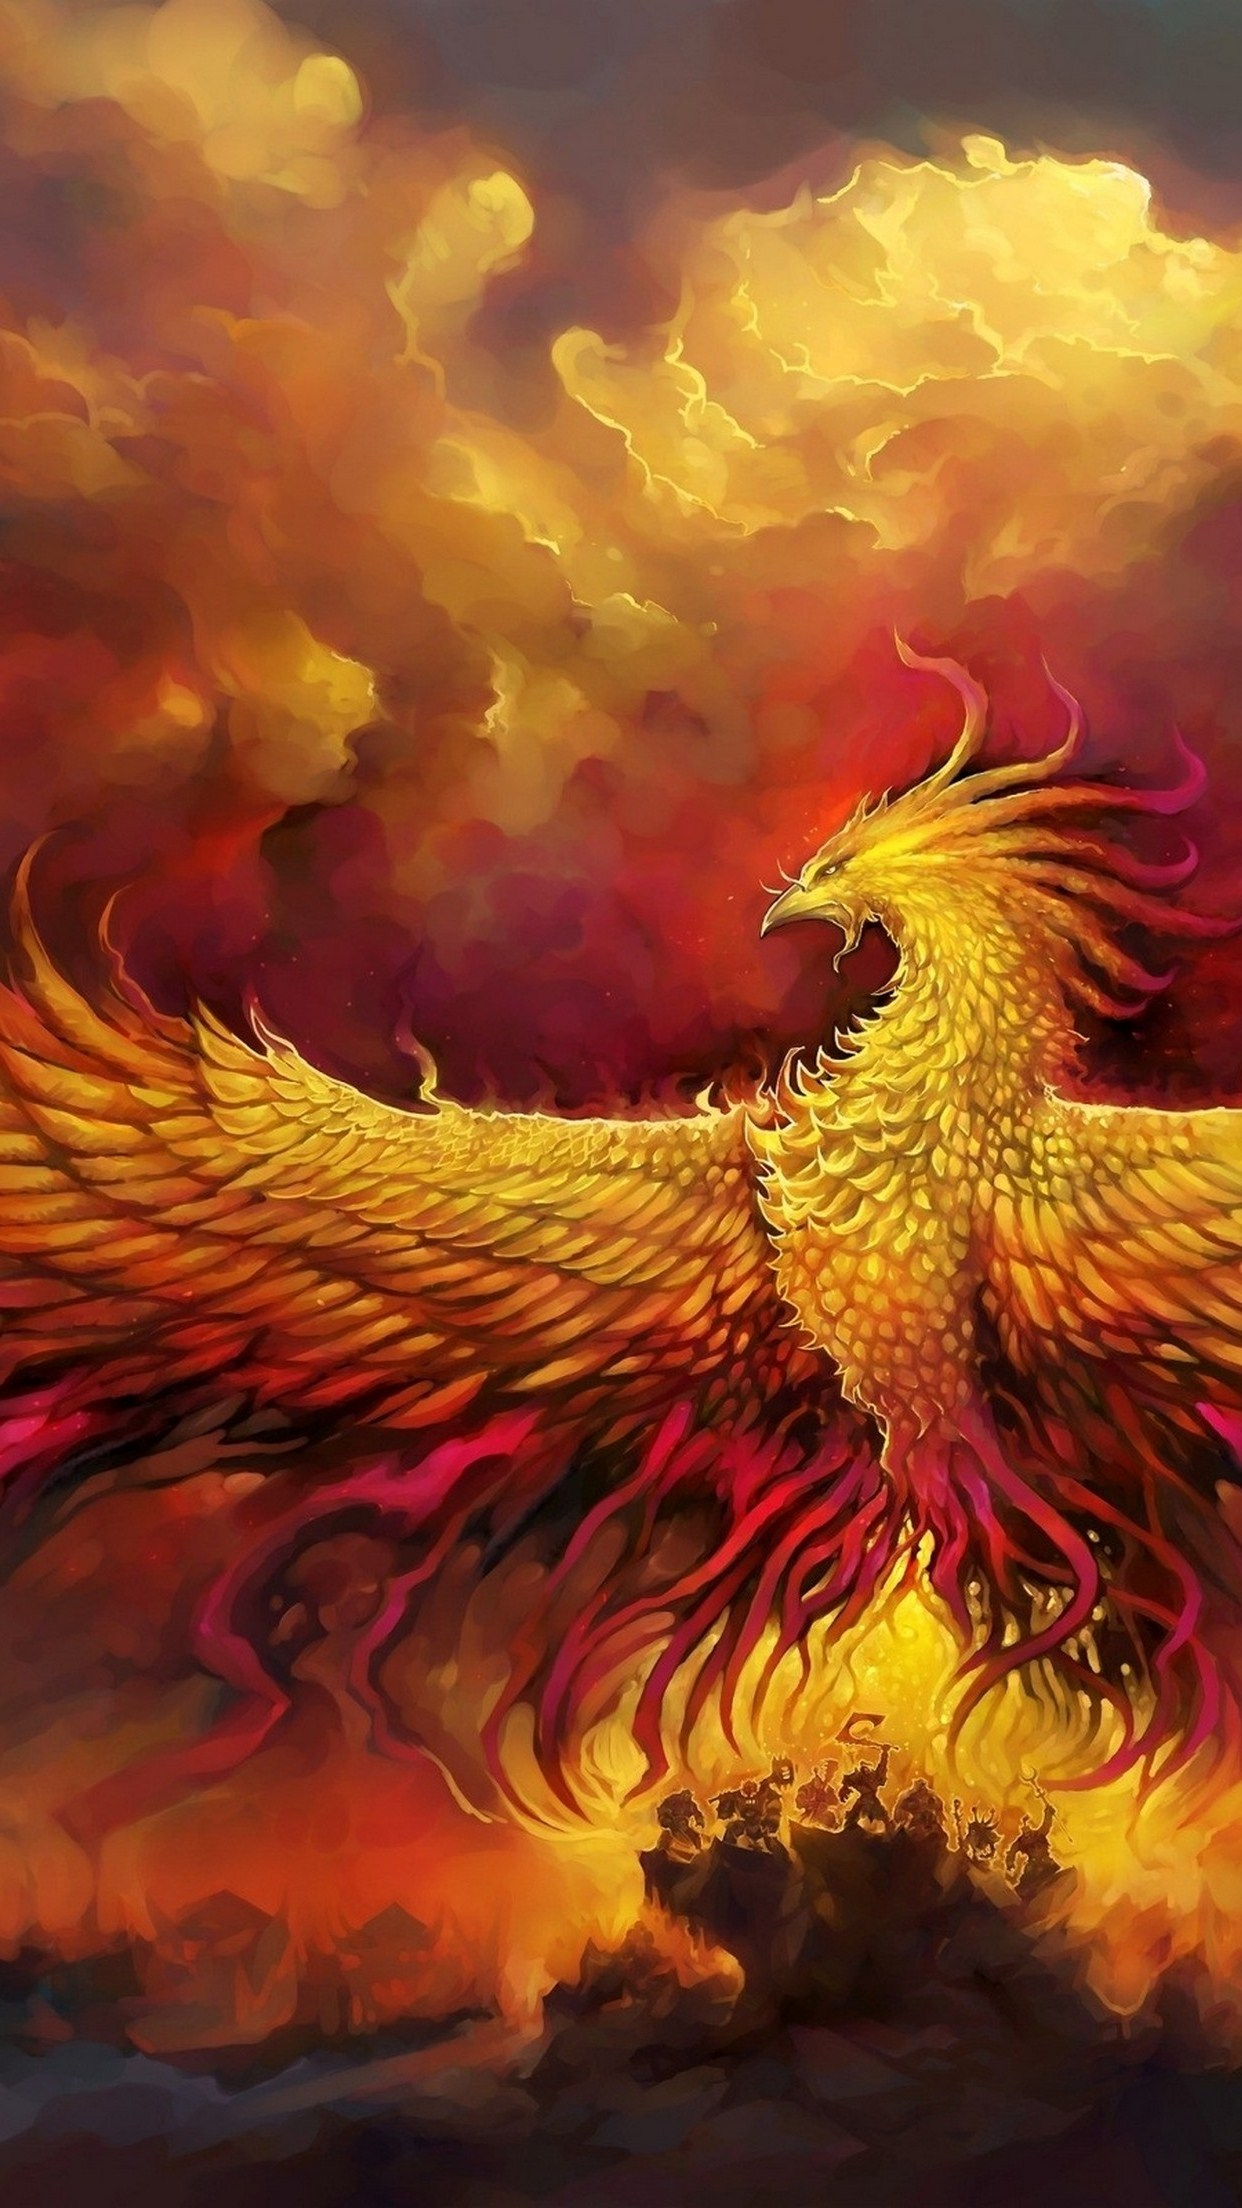 phoenix wings wallpaper for iphone x 8 7 6 free